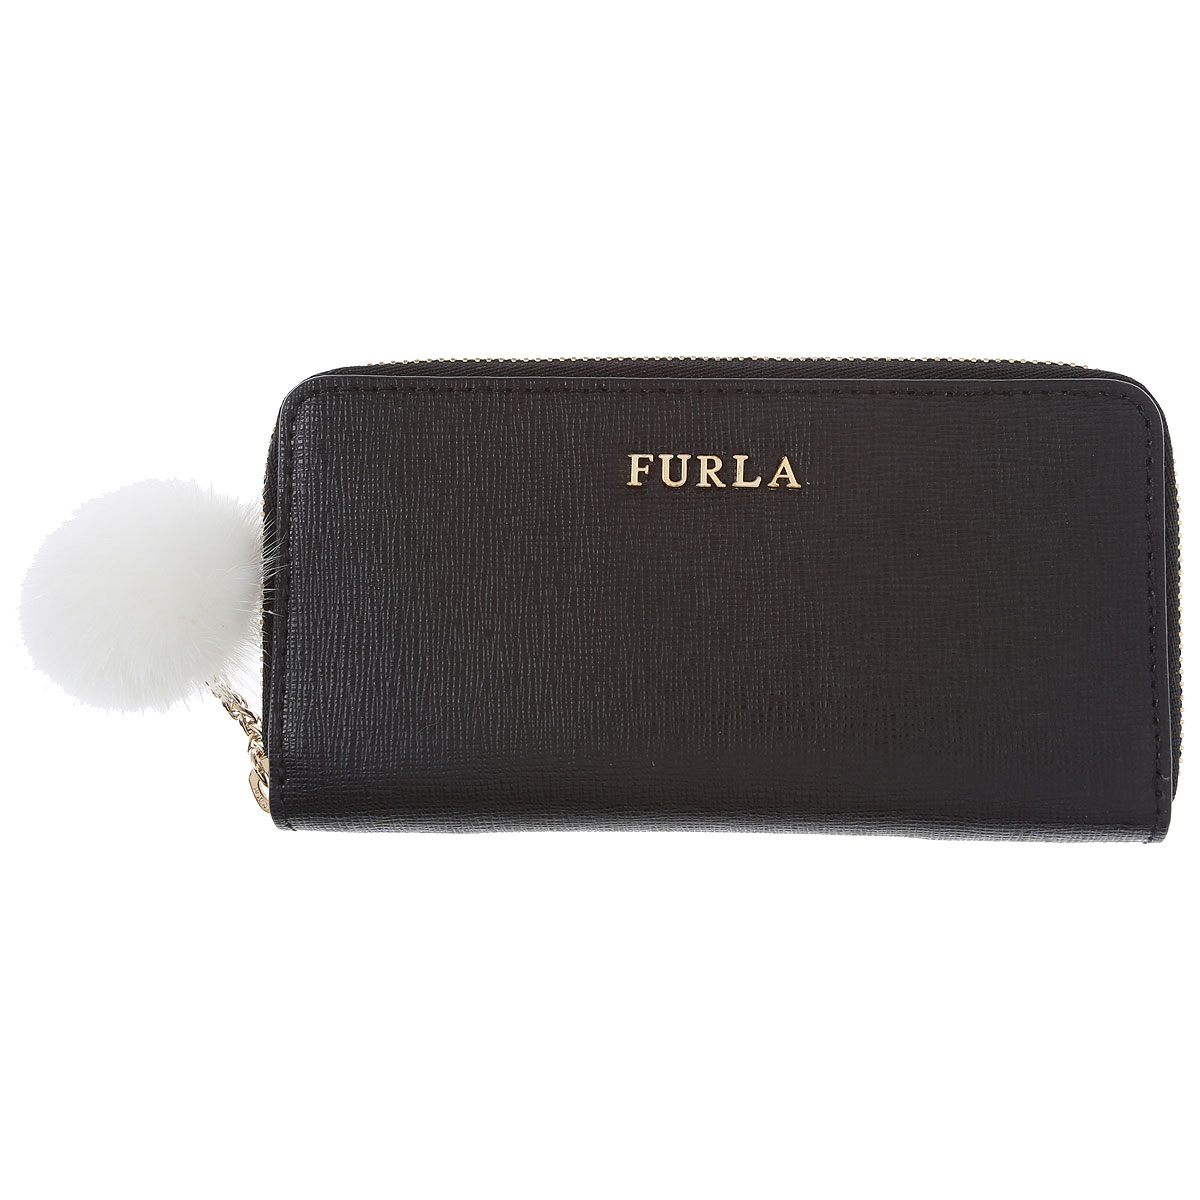 Furla Key Chain for Women, Key Ring On Sale in Outlet, Onyx Black, Leather, 2019